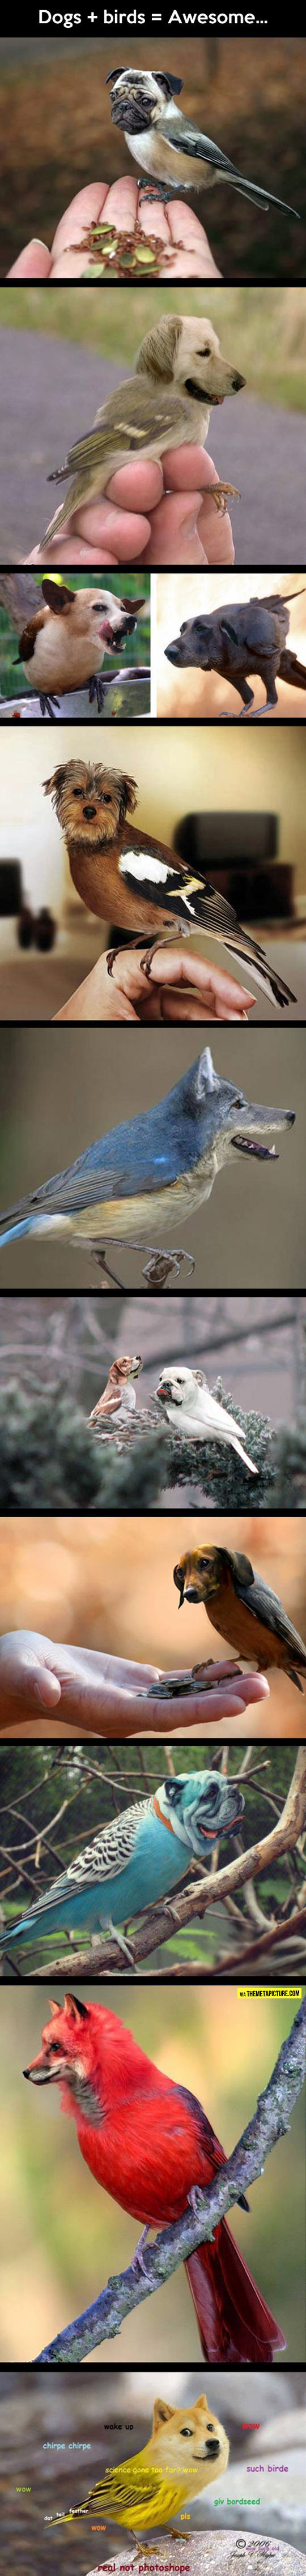 When You Mix Dogs And Birds